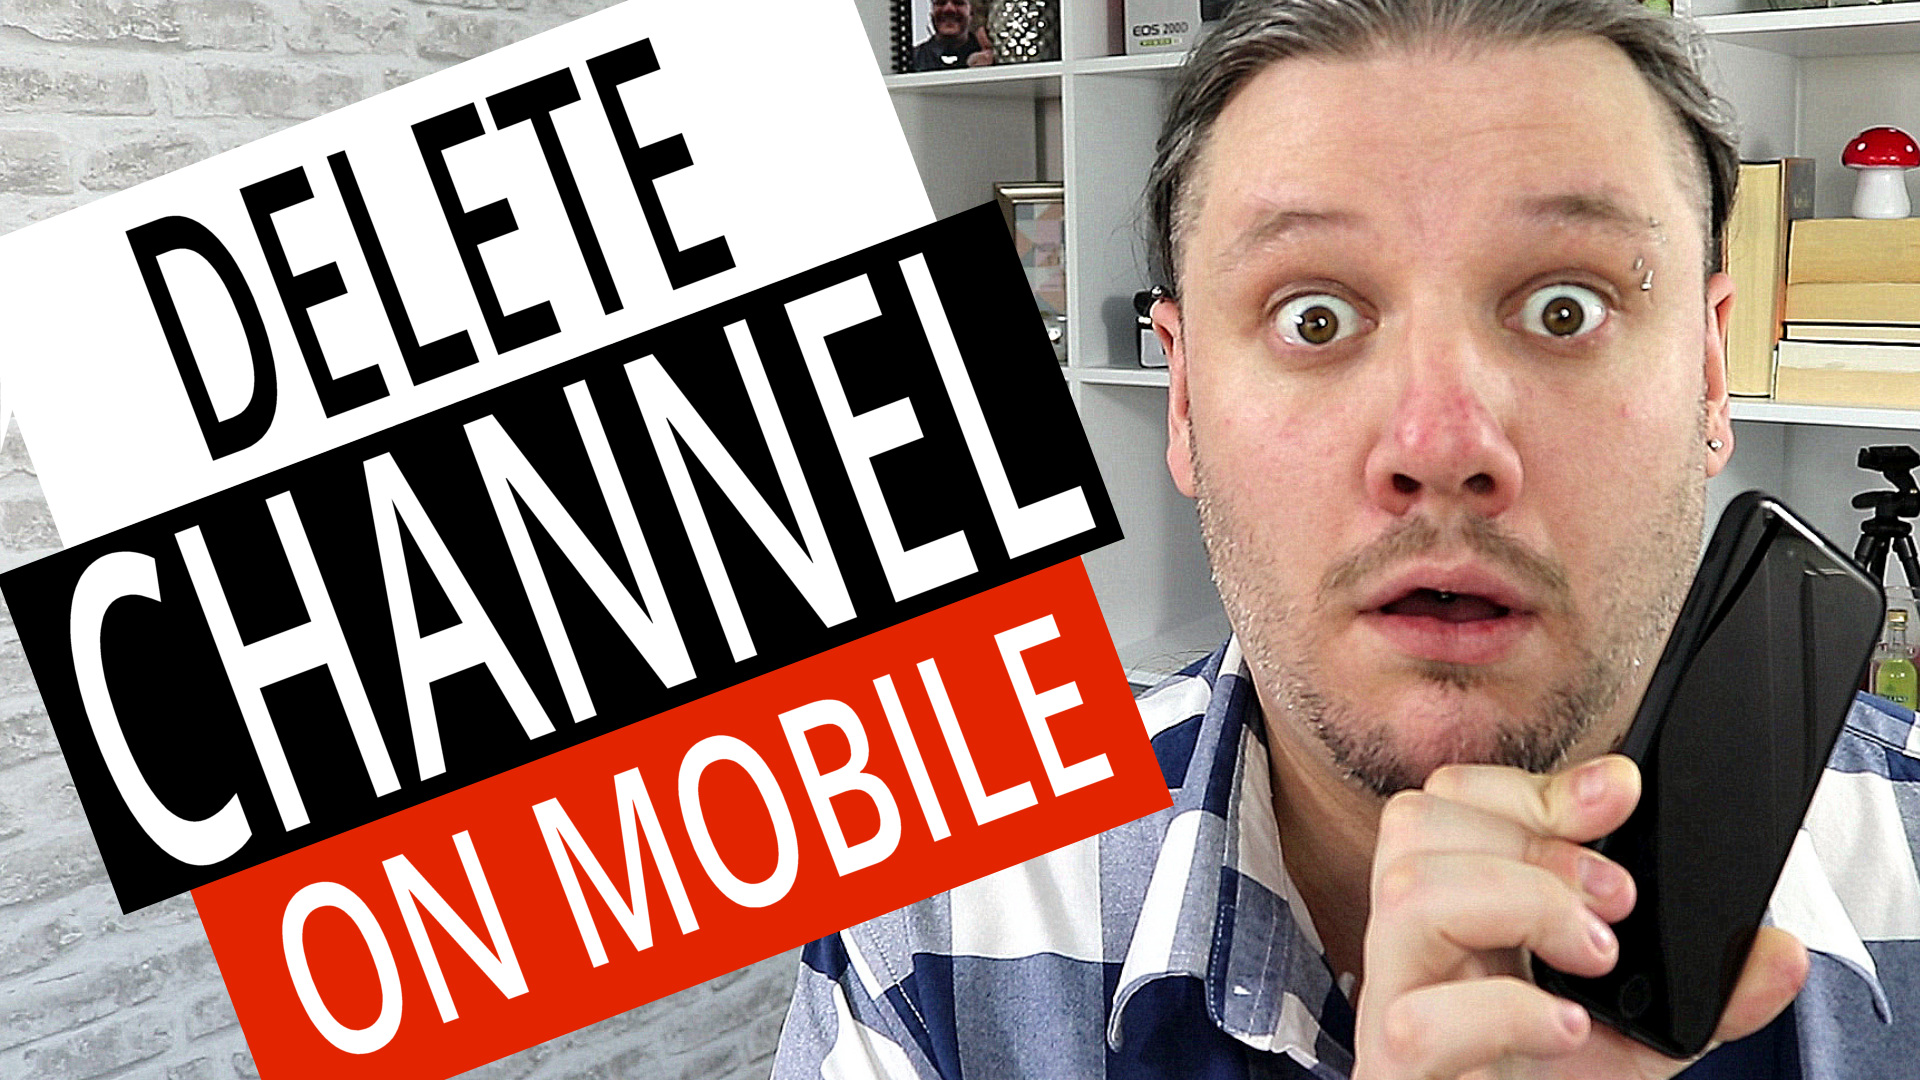 How To Delete A YouTube Channel on Mobile — Delete Your Channel (Android / iPhone), delete youtube channel,how to delete a youtube channel,how to delete youtube account,how to delete your youtube channel,delete a youtube account,delete channel,delete your youtube account,delete a youtube channel,delete your youtube channel,how to delete your youtube account,delete channels,delete youtube account,delete a youtube channel on mobile,how to delete a channel on mobile,how to delete a youtube channel on mobile device,delete channel on phone,channel